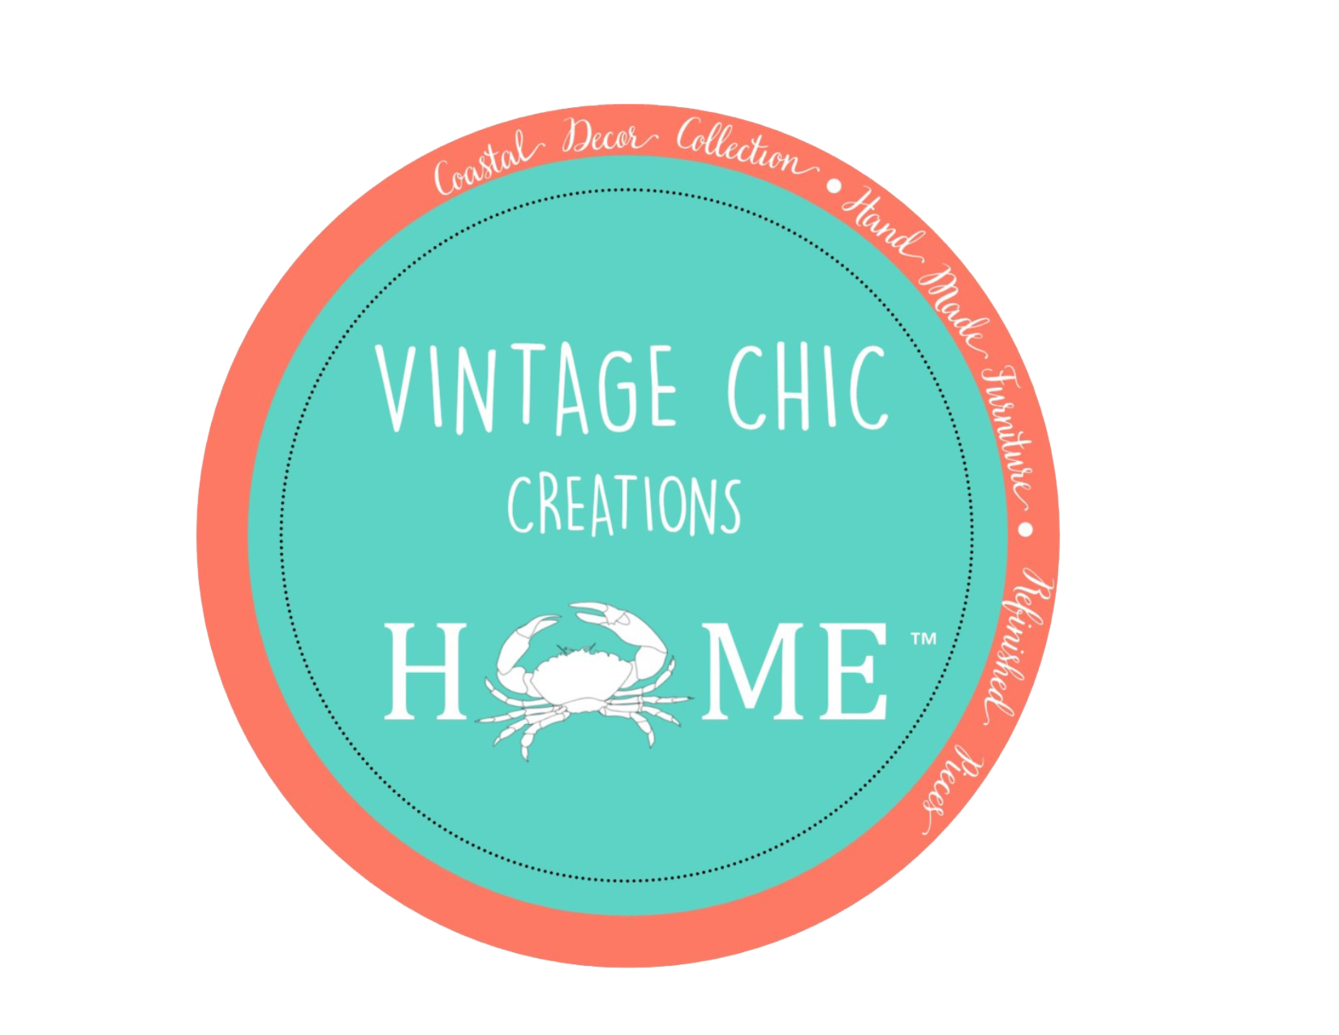 Vintage Chic Creations